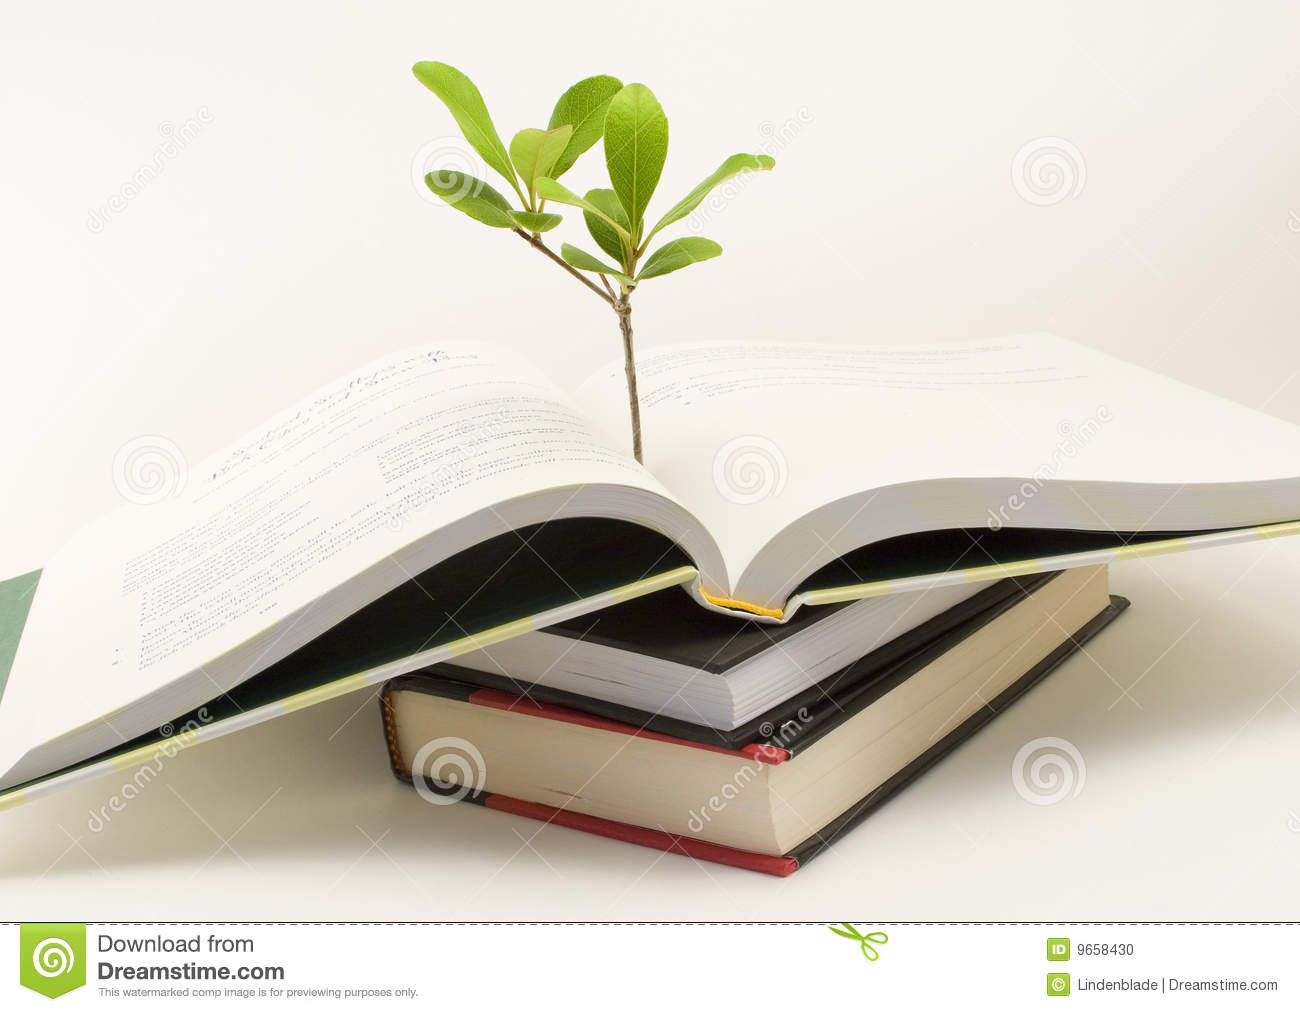 84227d06d376d Plant Growing Out Of Open Book Stock Photo - Image of leaf ...